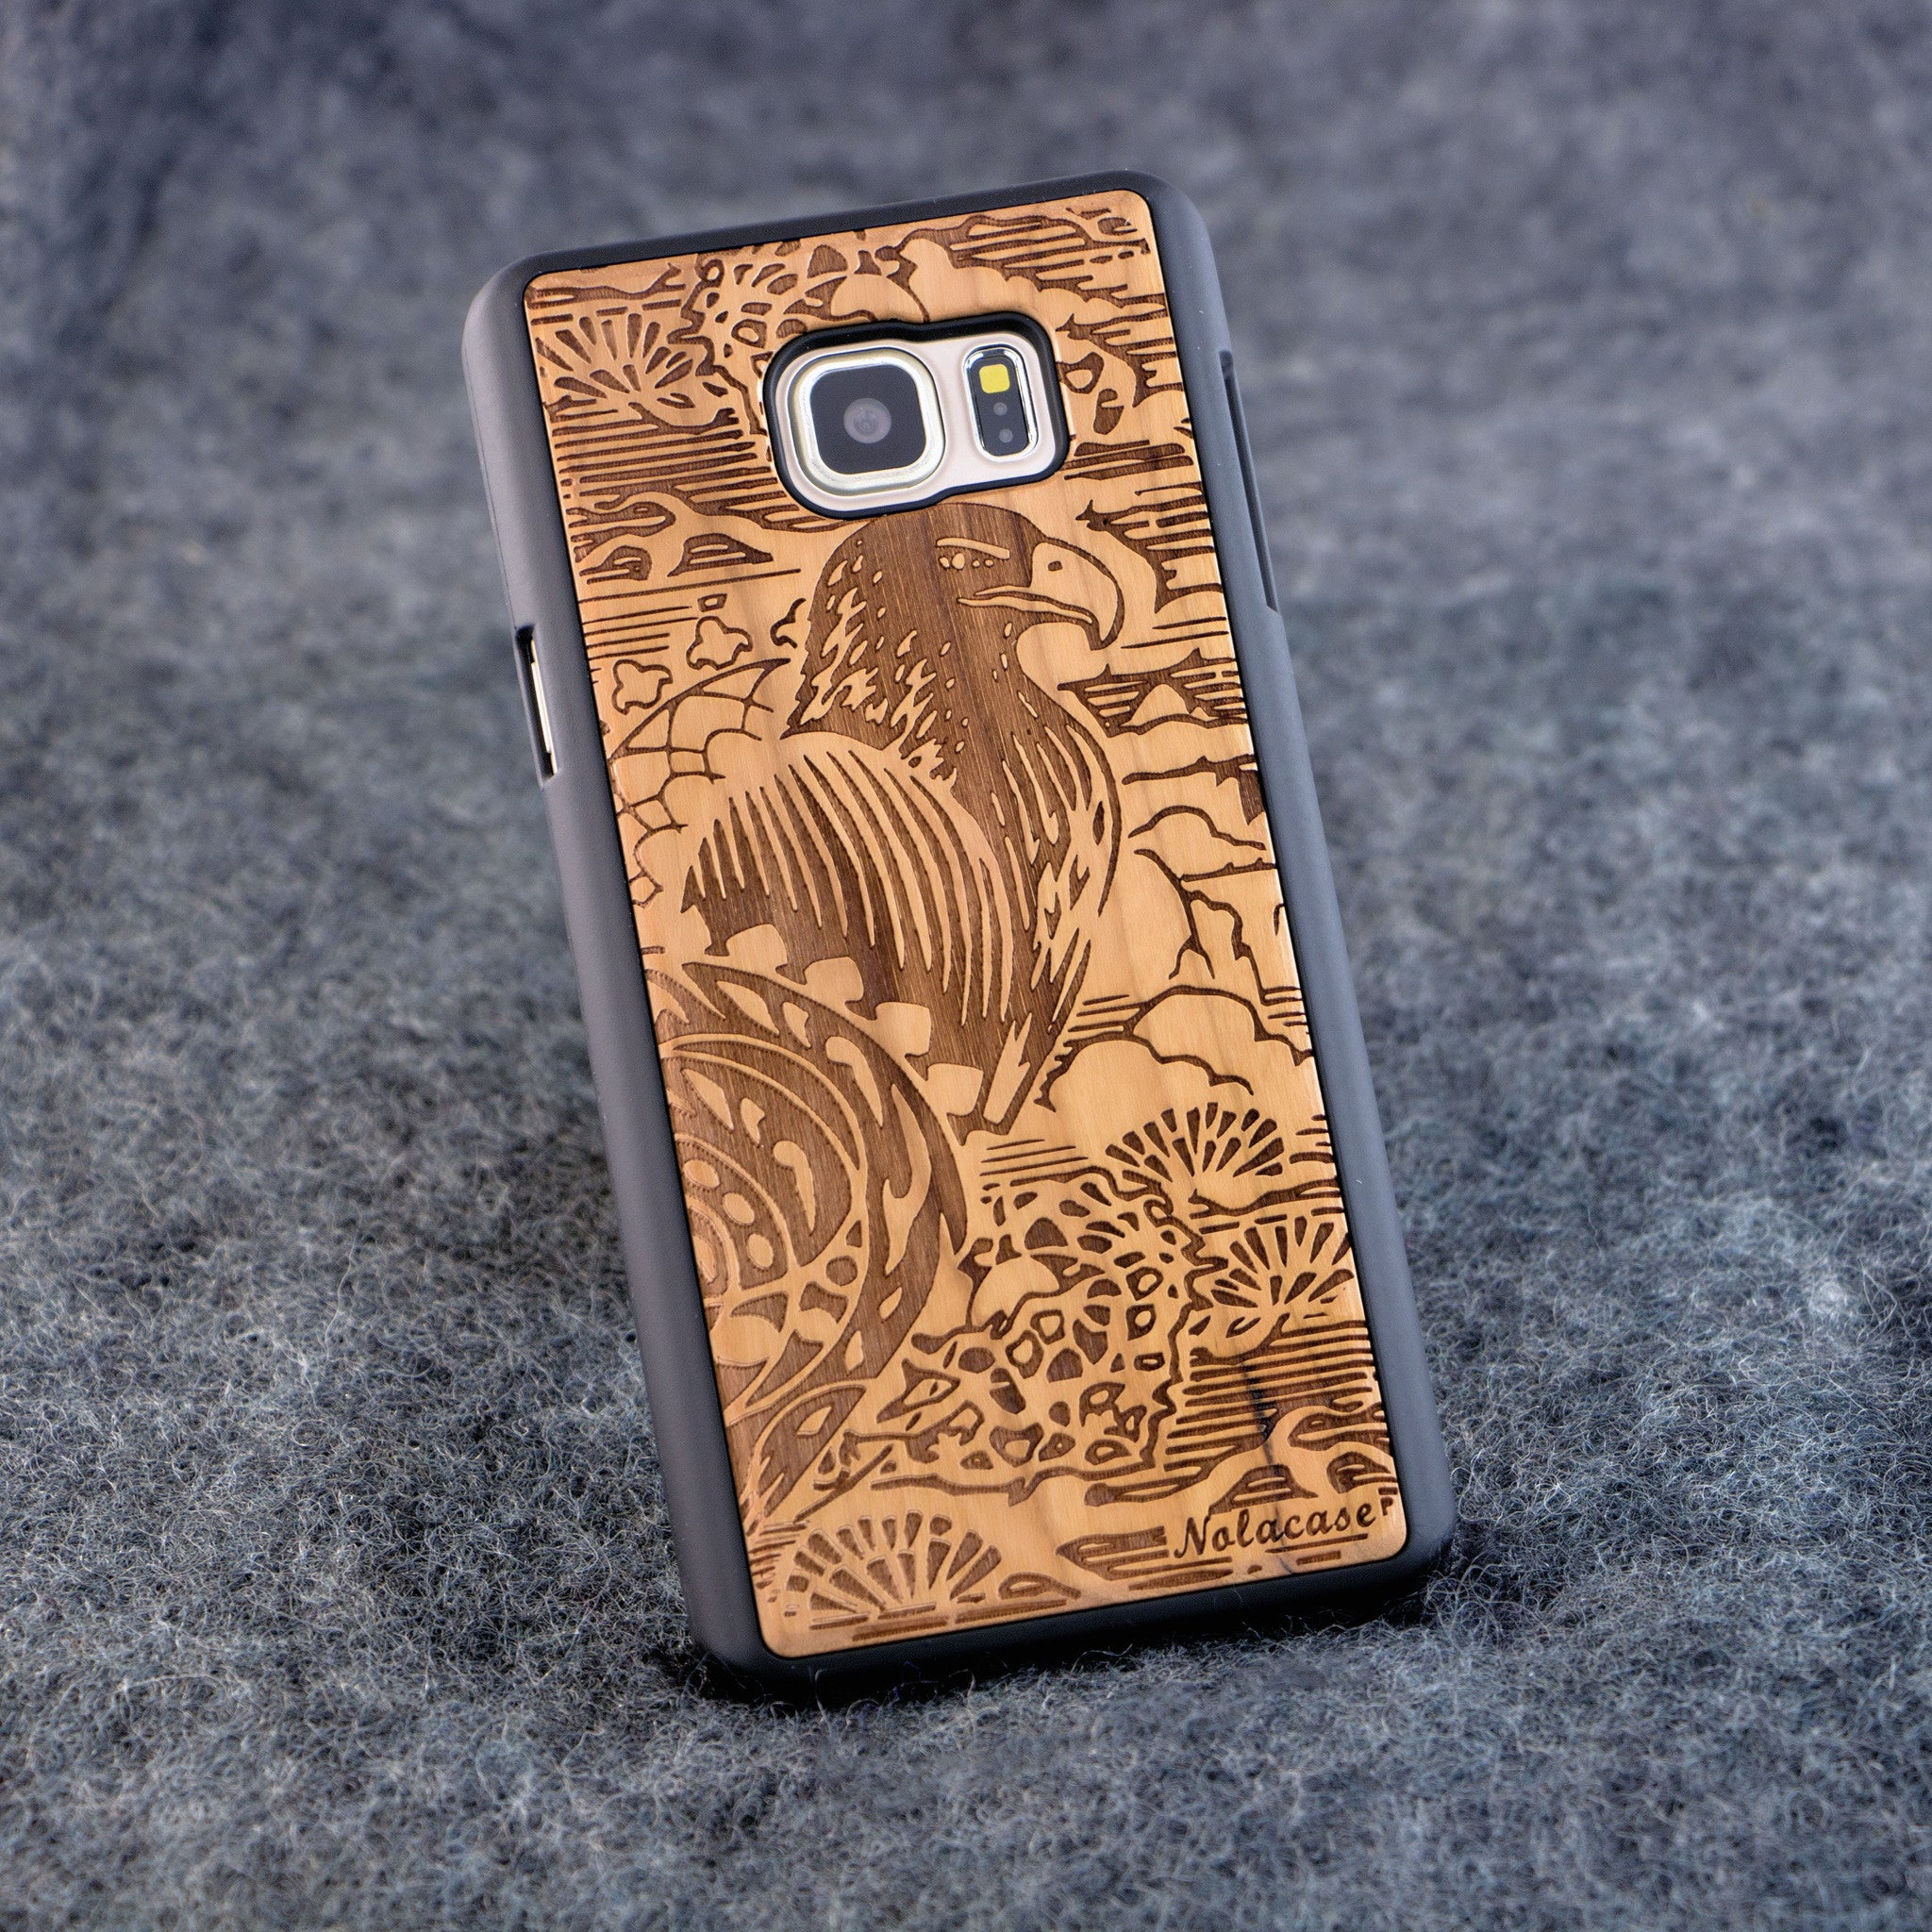 Samsung Note 5 Eagle Slim Wood Case - NOLACASE